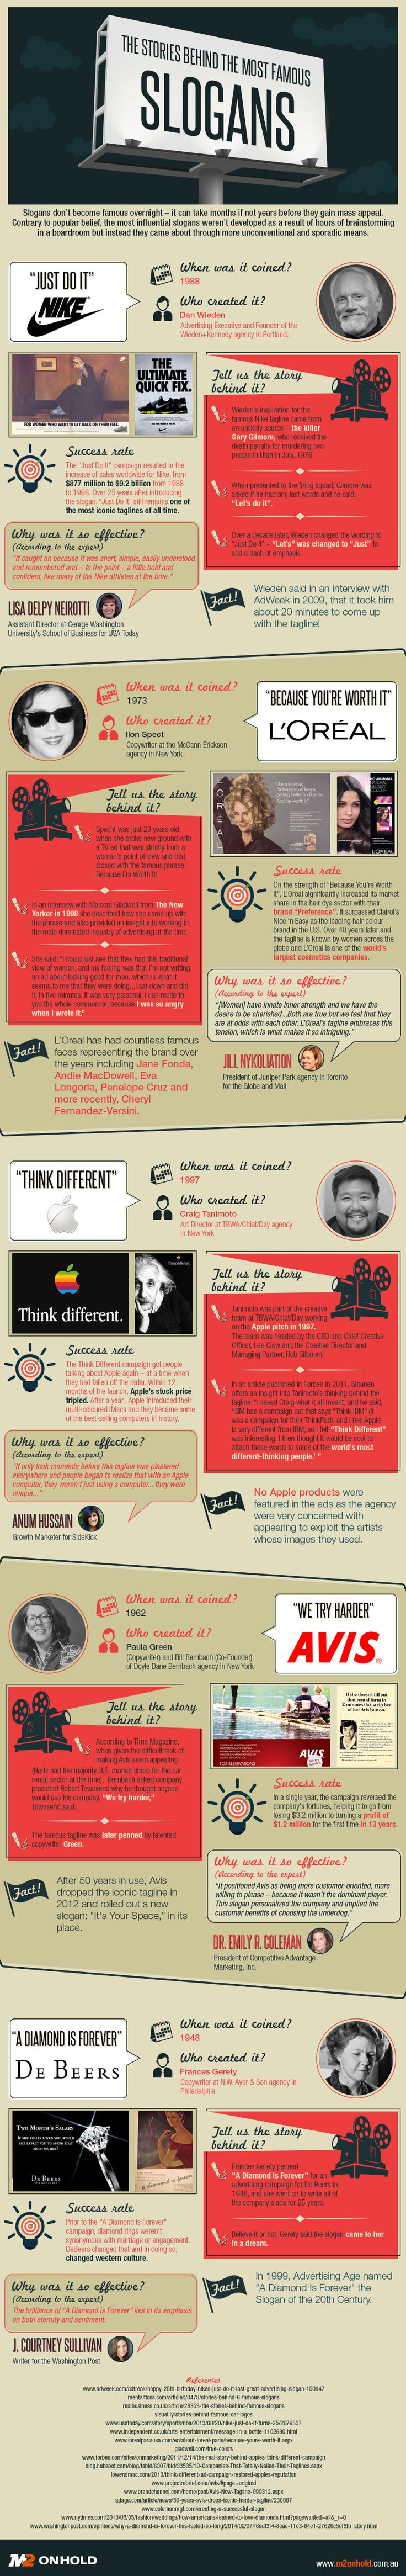 The Stories Behind The Most Famous Slogans #Infographic #Advertising #Slogans